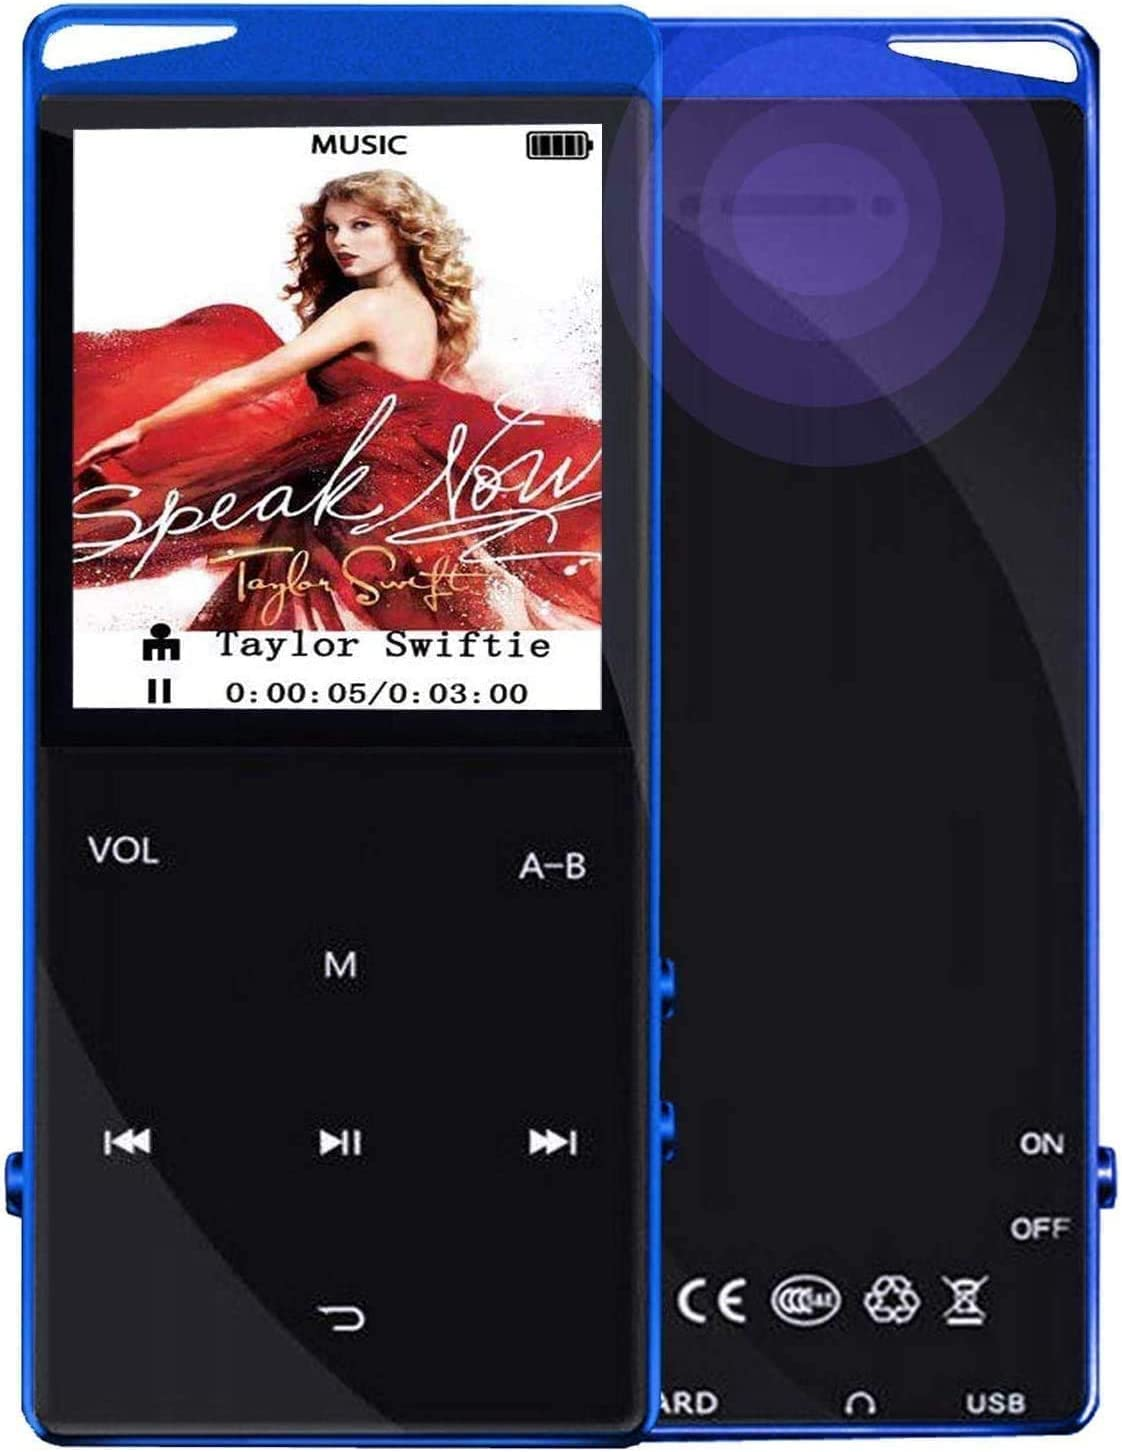 Frehovy 16G MP3 Player with Tampa Seasonal Wrap Introduction Mall 4.2 Portable Sou Lossless Bluetooth